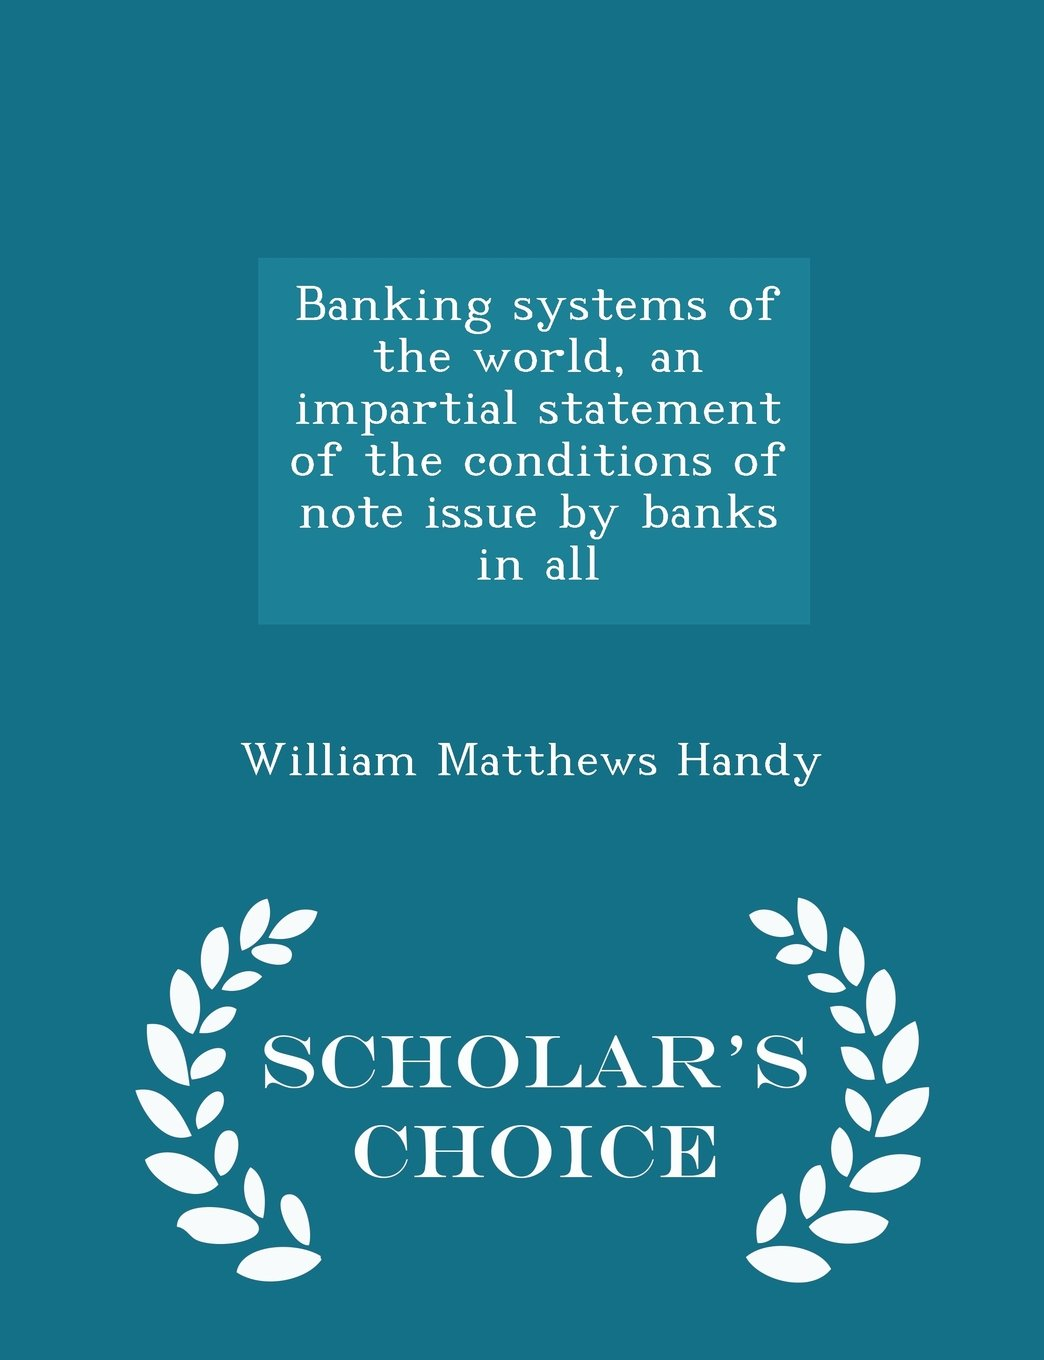 Download Banking systems of the world, an impartial statement of the conditions of note issue by banks in all - Scholar's Choice Edition PDF